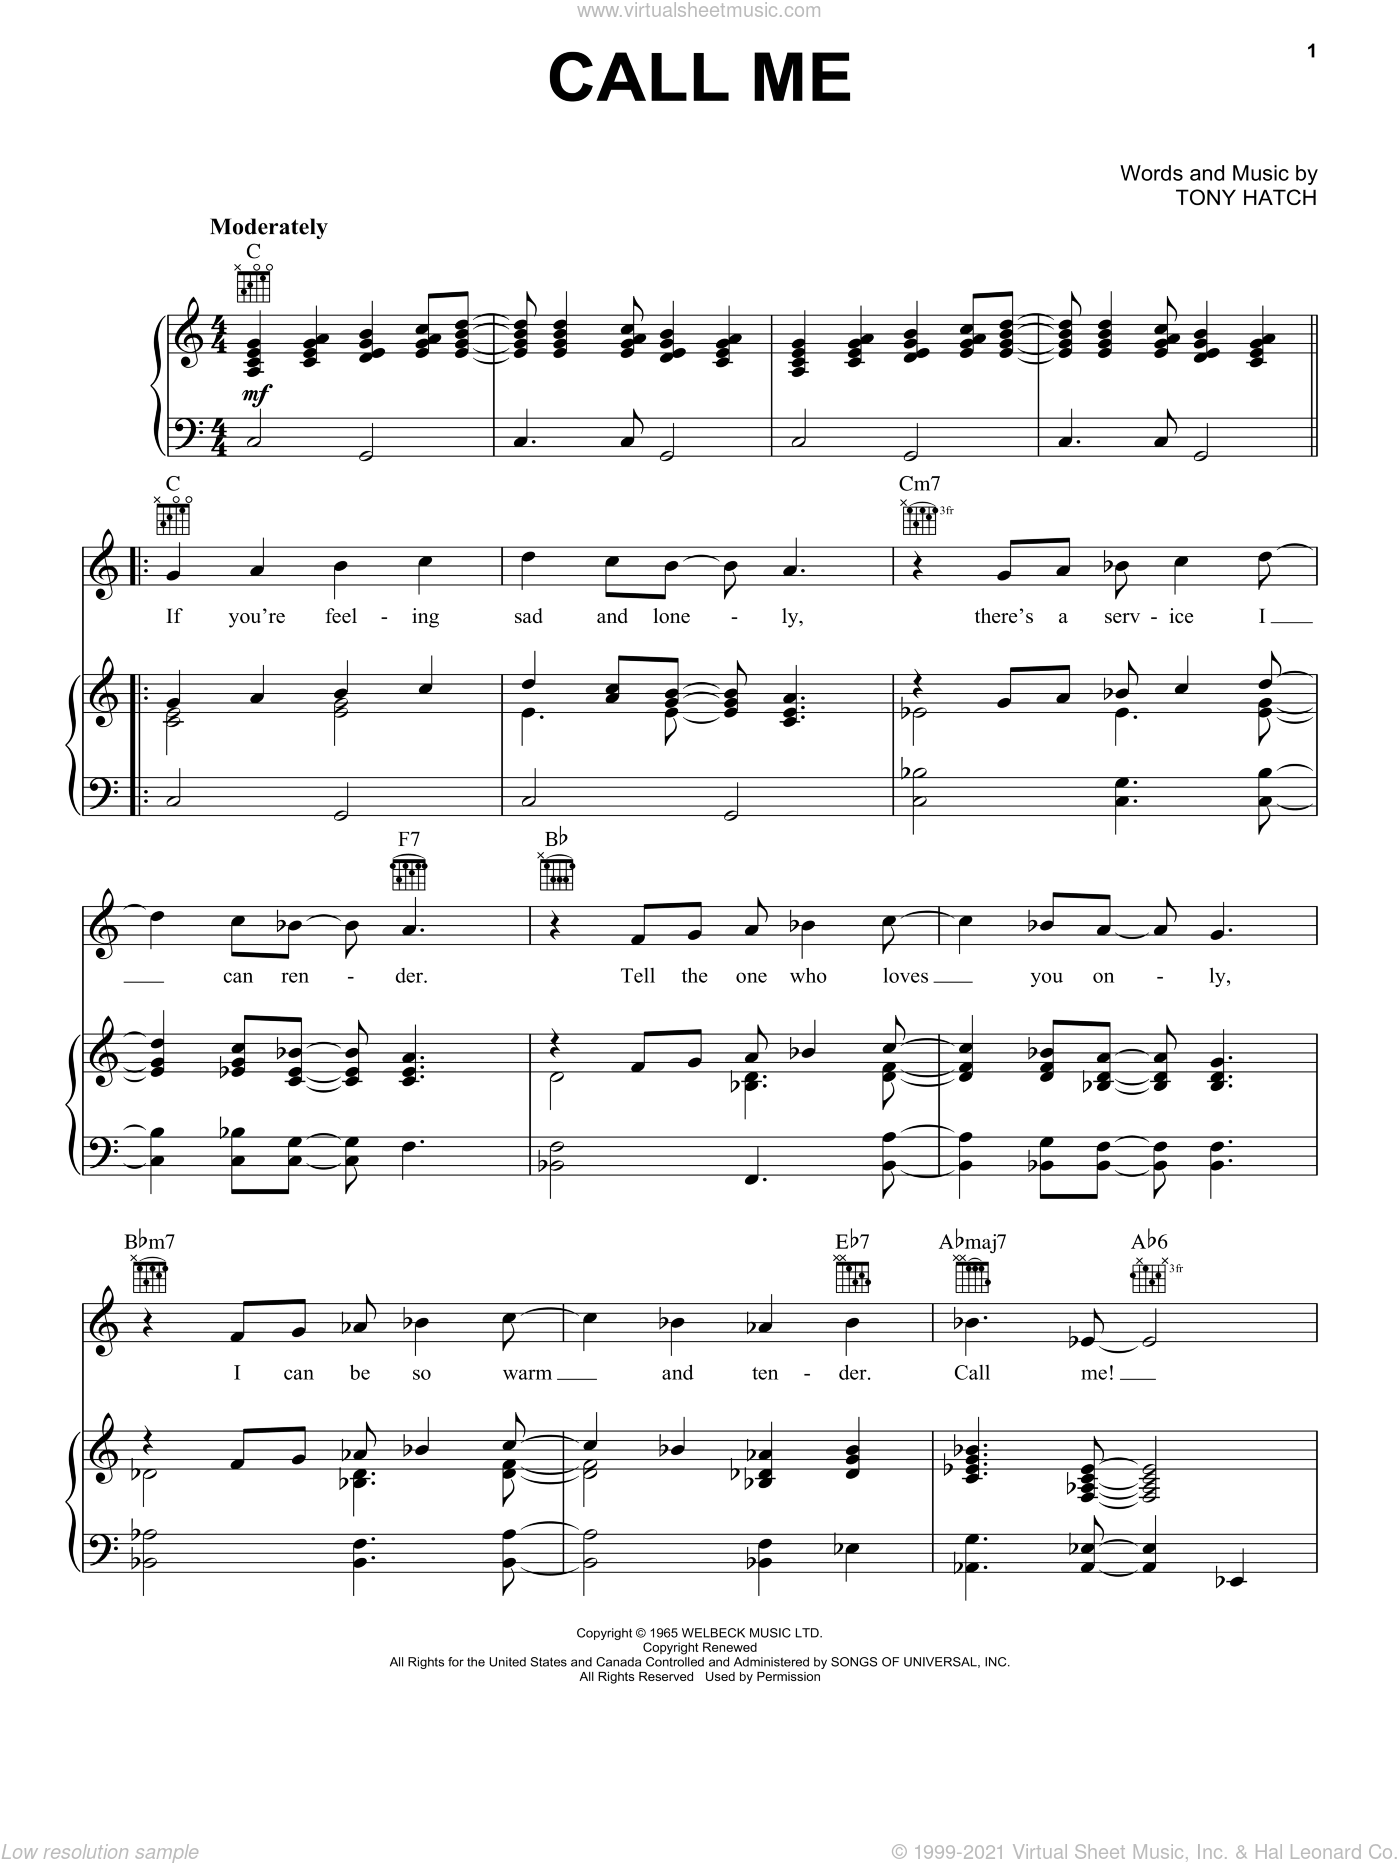 Call Me sheet music for voice, piano or guitar by Tony Hatch